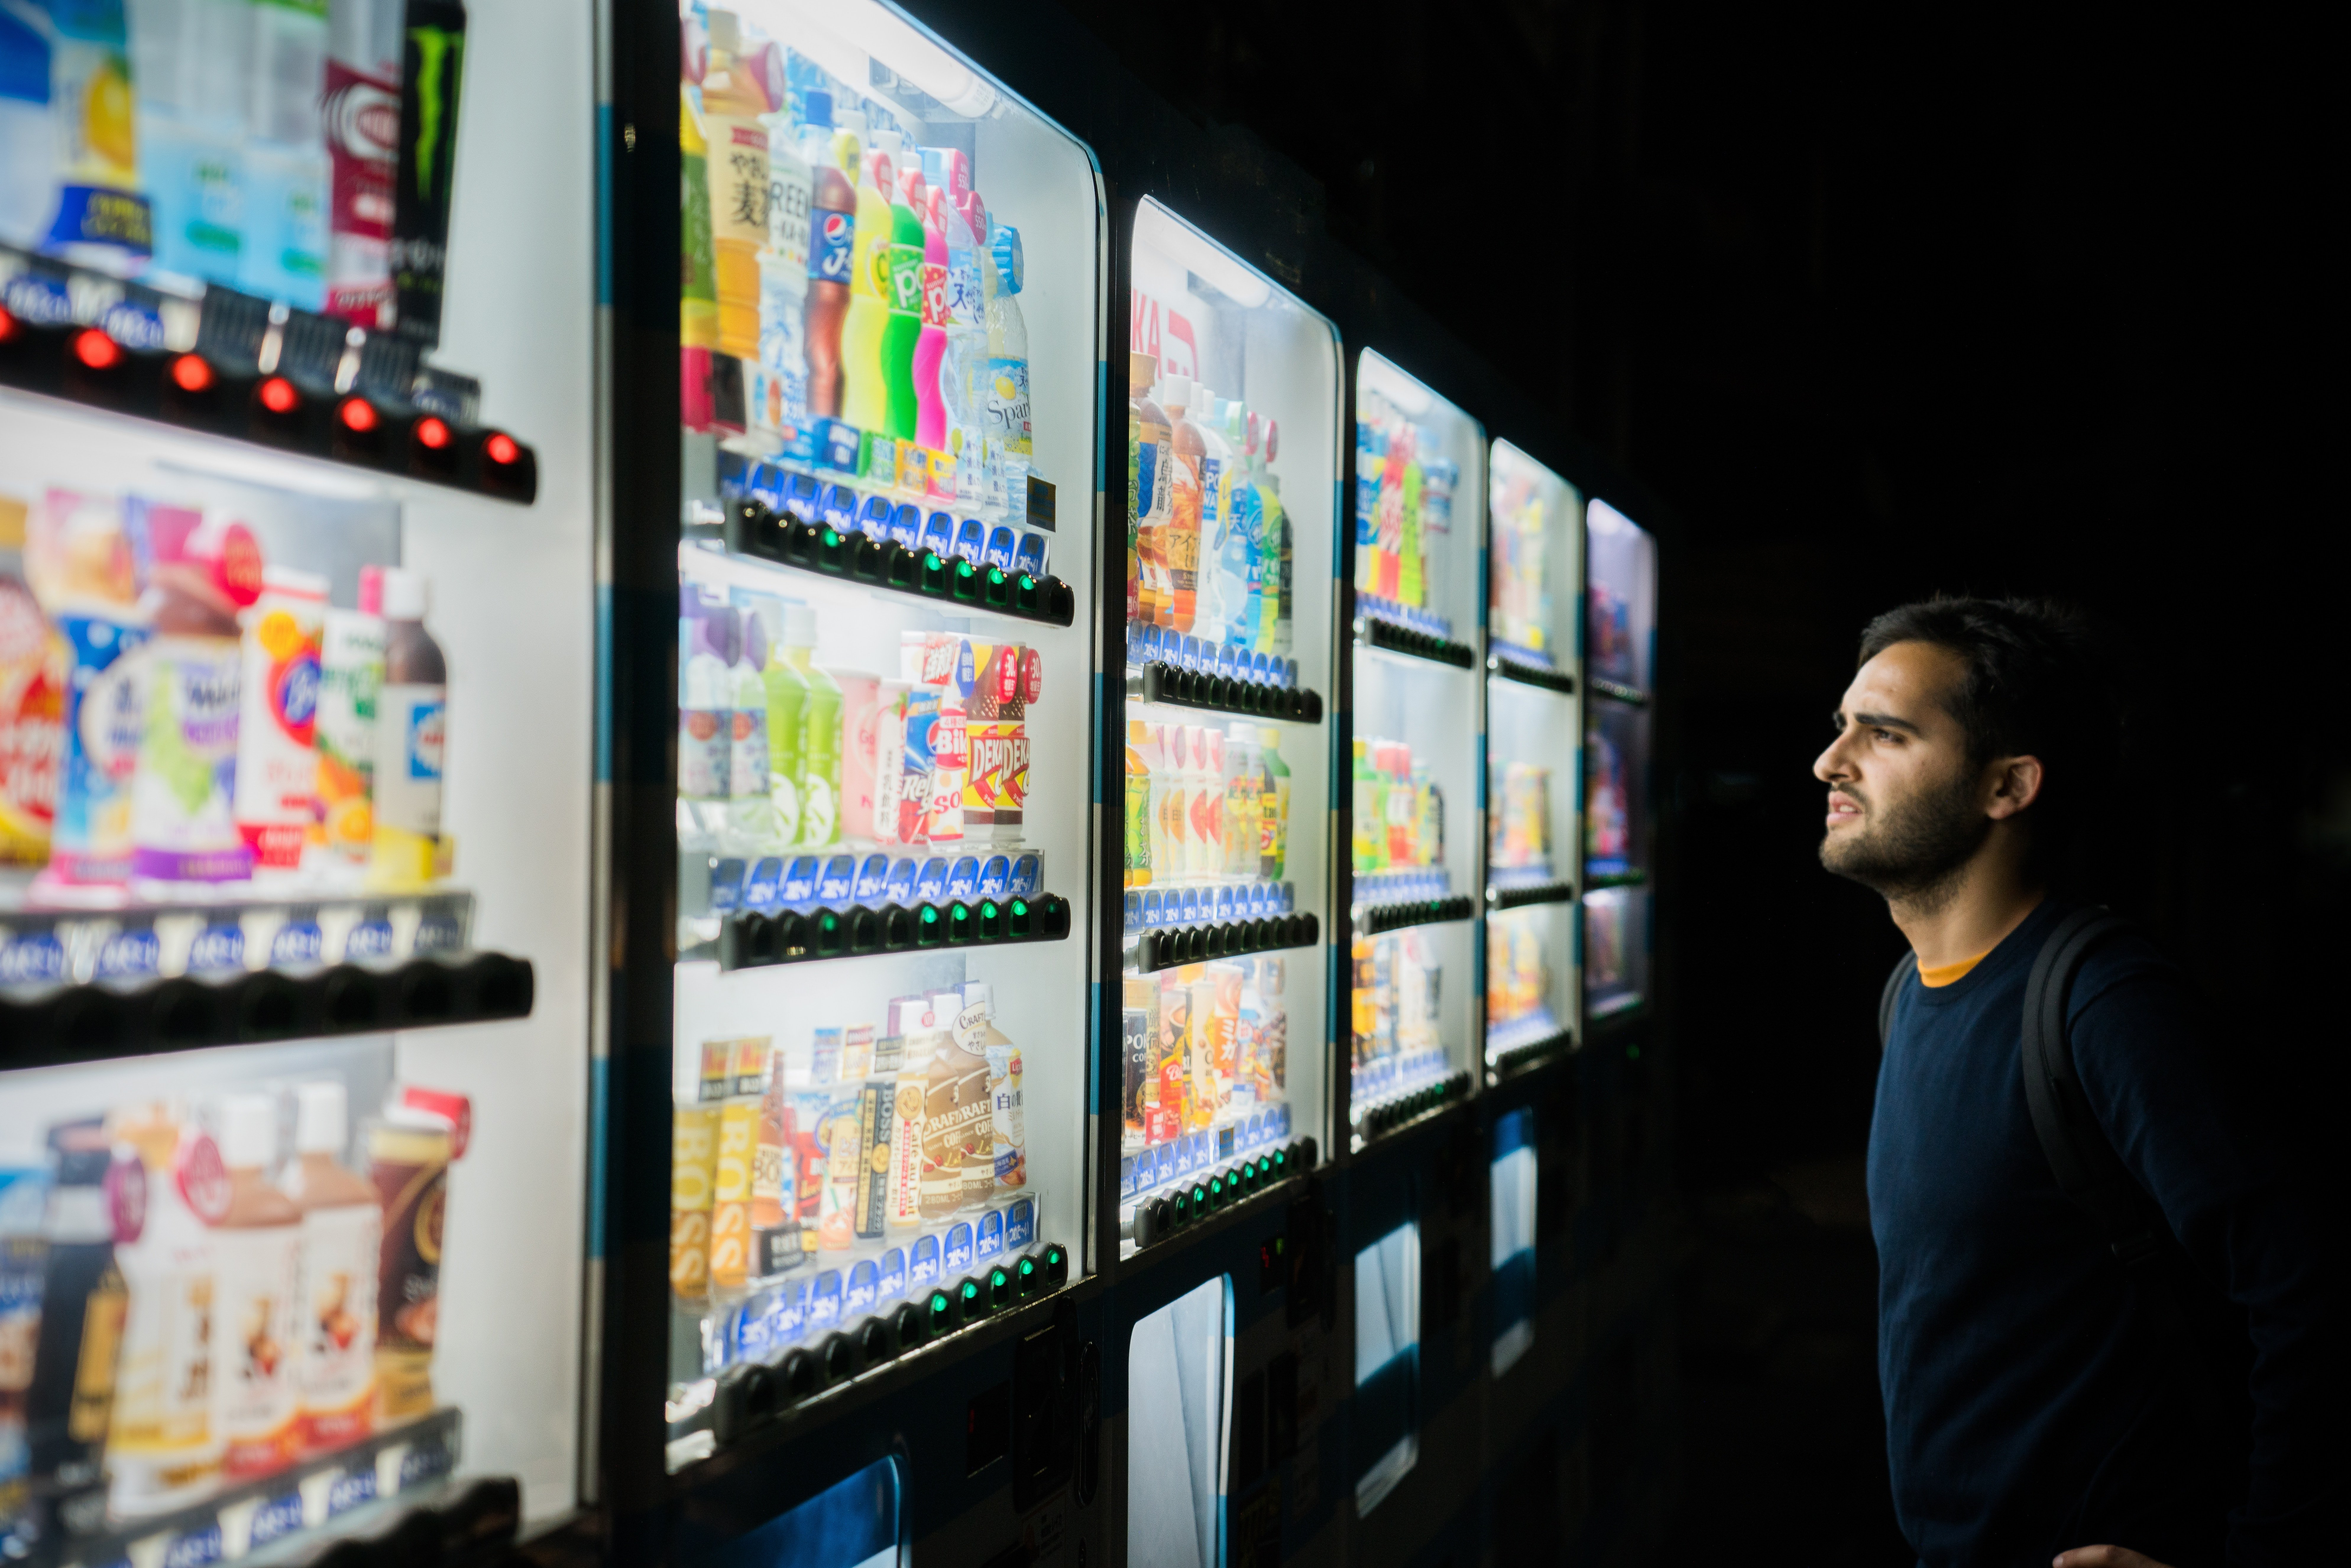 Screenly is at the forefront of new vending machine technology. Read more below on how you can use digital signage with your vending machines.